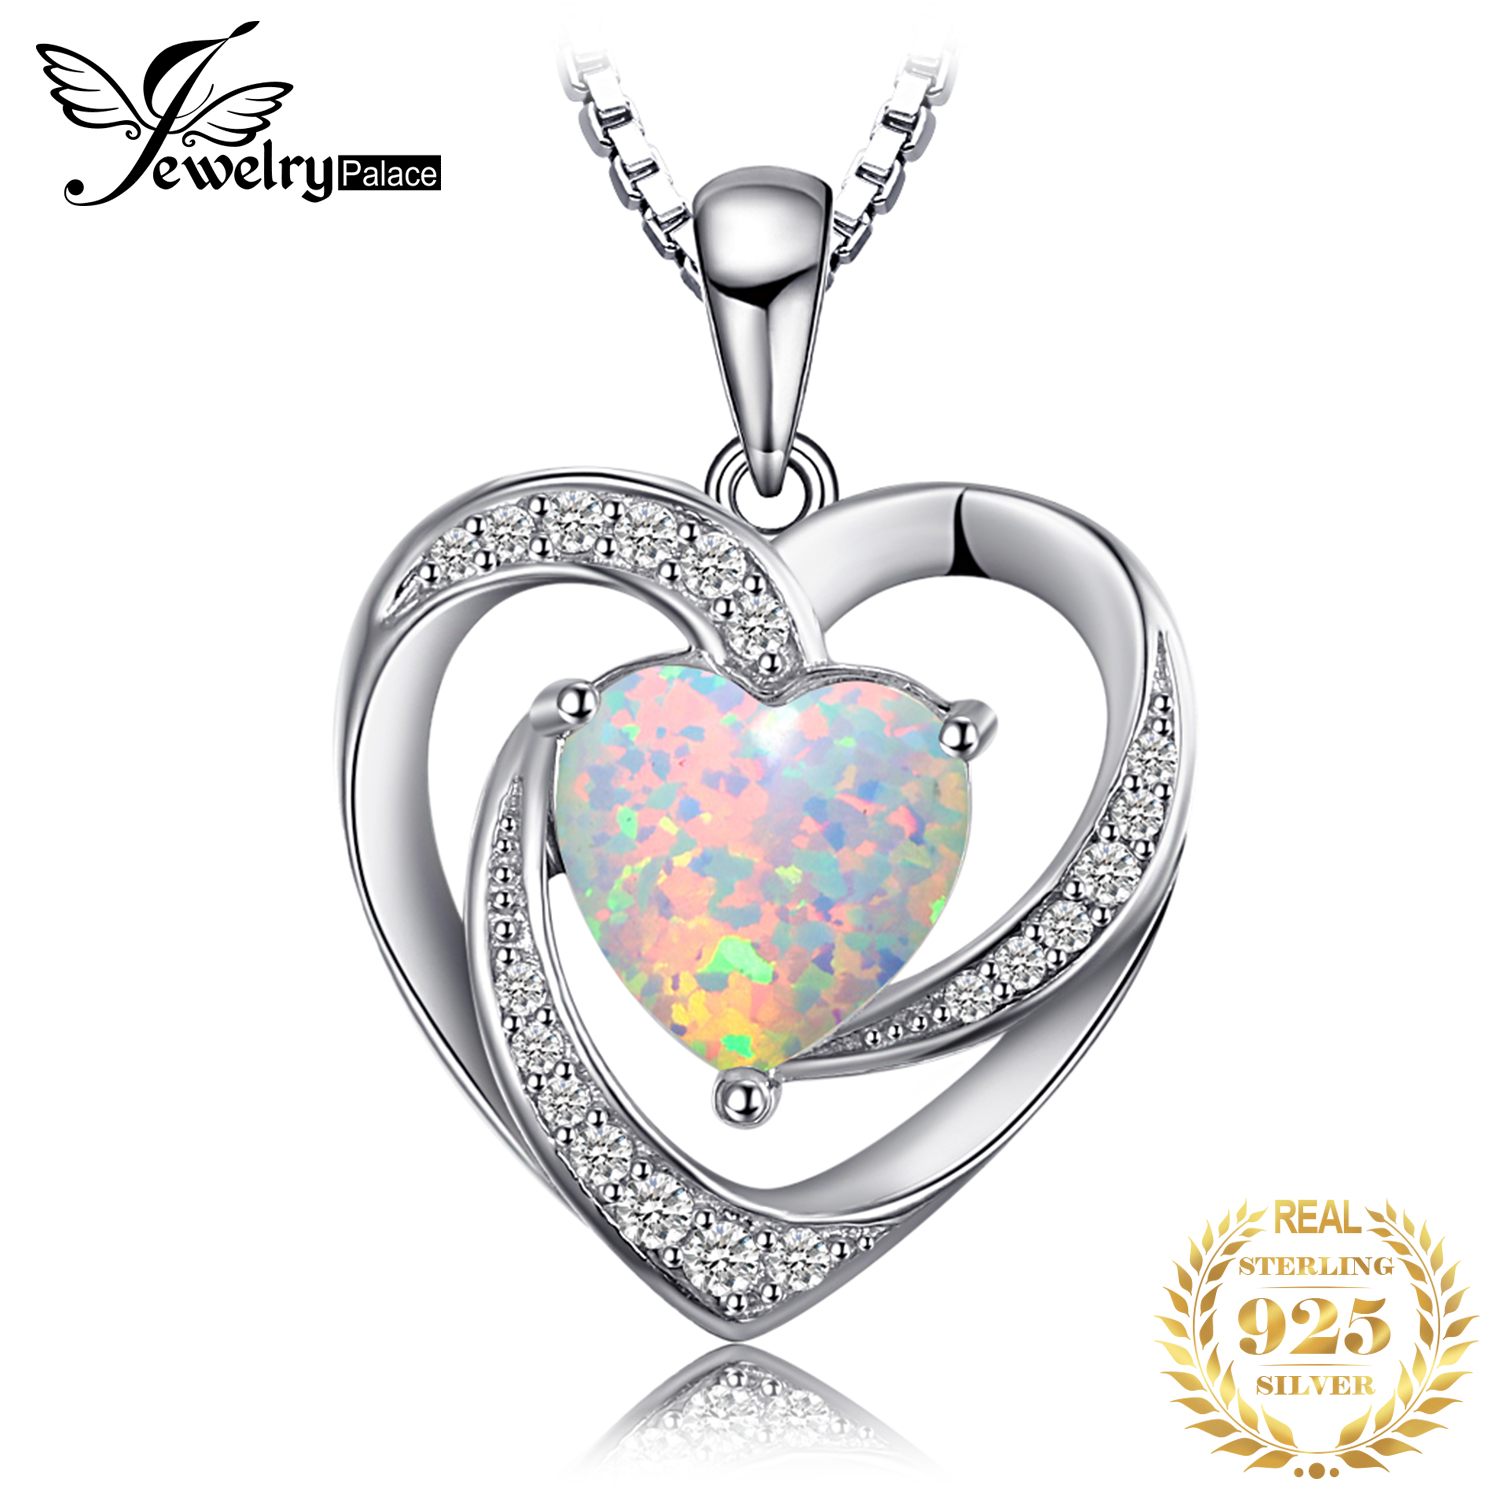 JewelryPalace Heart Created Opal Pendant Necklace 925 Sterling Silver Gemstones Choker Statement Necklace Women Without Chain